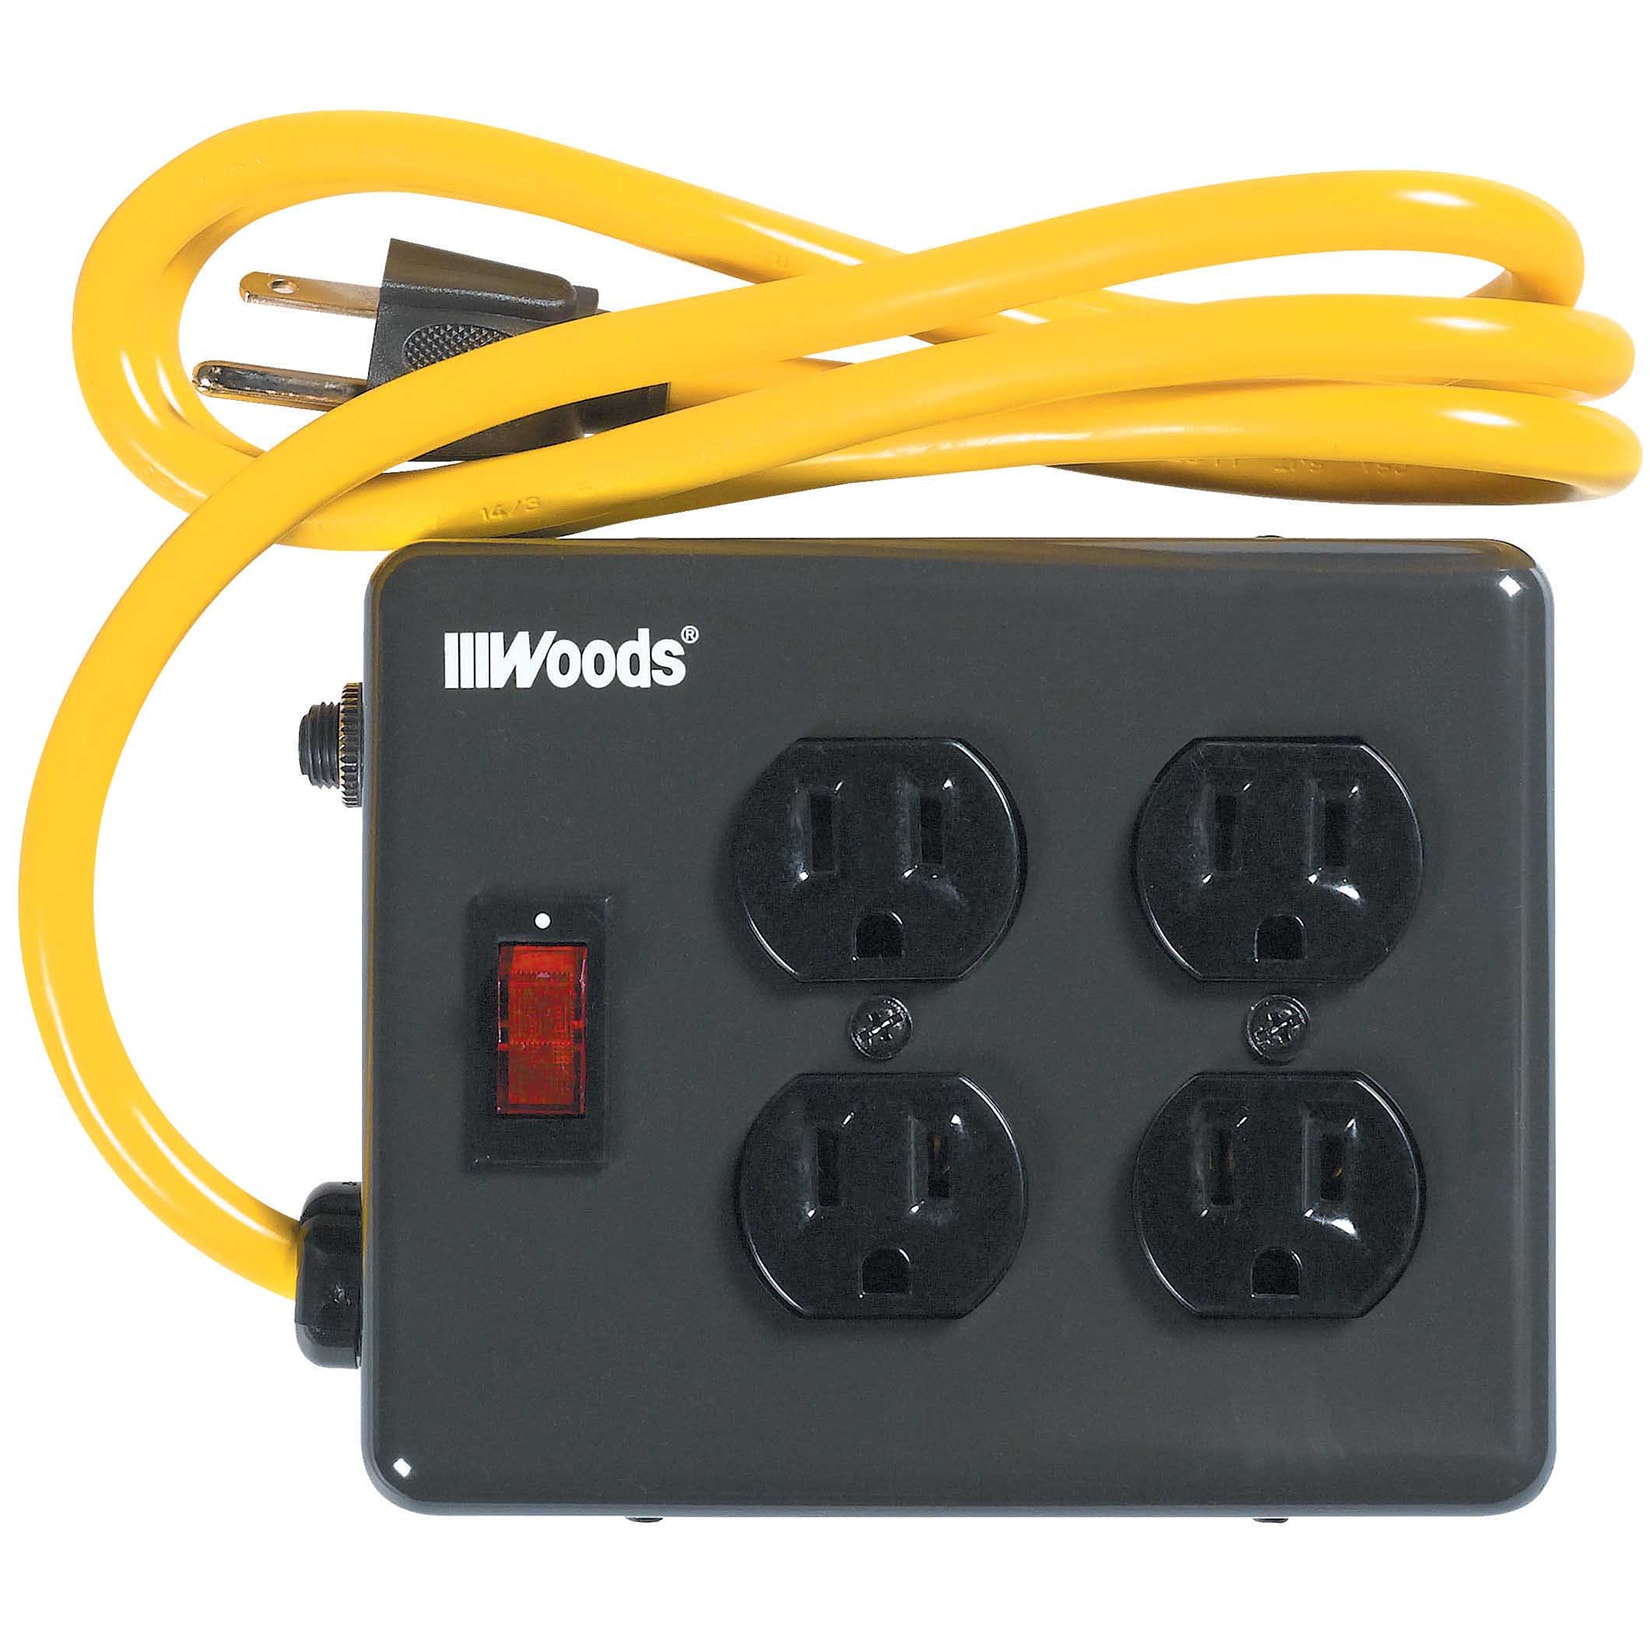 Woods 2177 4-Outlet Metal Power Block Adapter with Lighted Switch, 4-Feet, Black